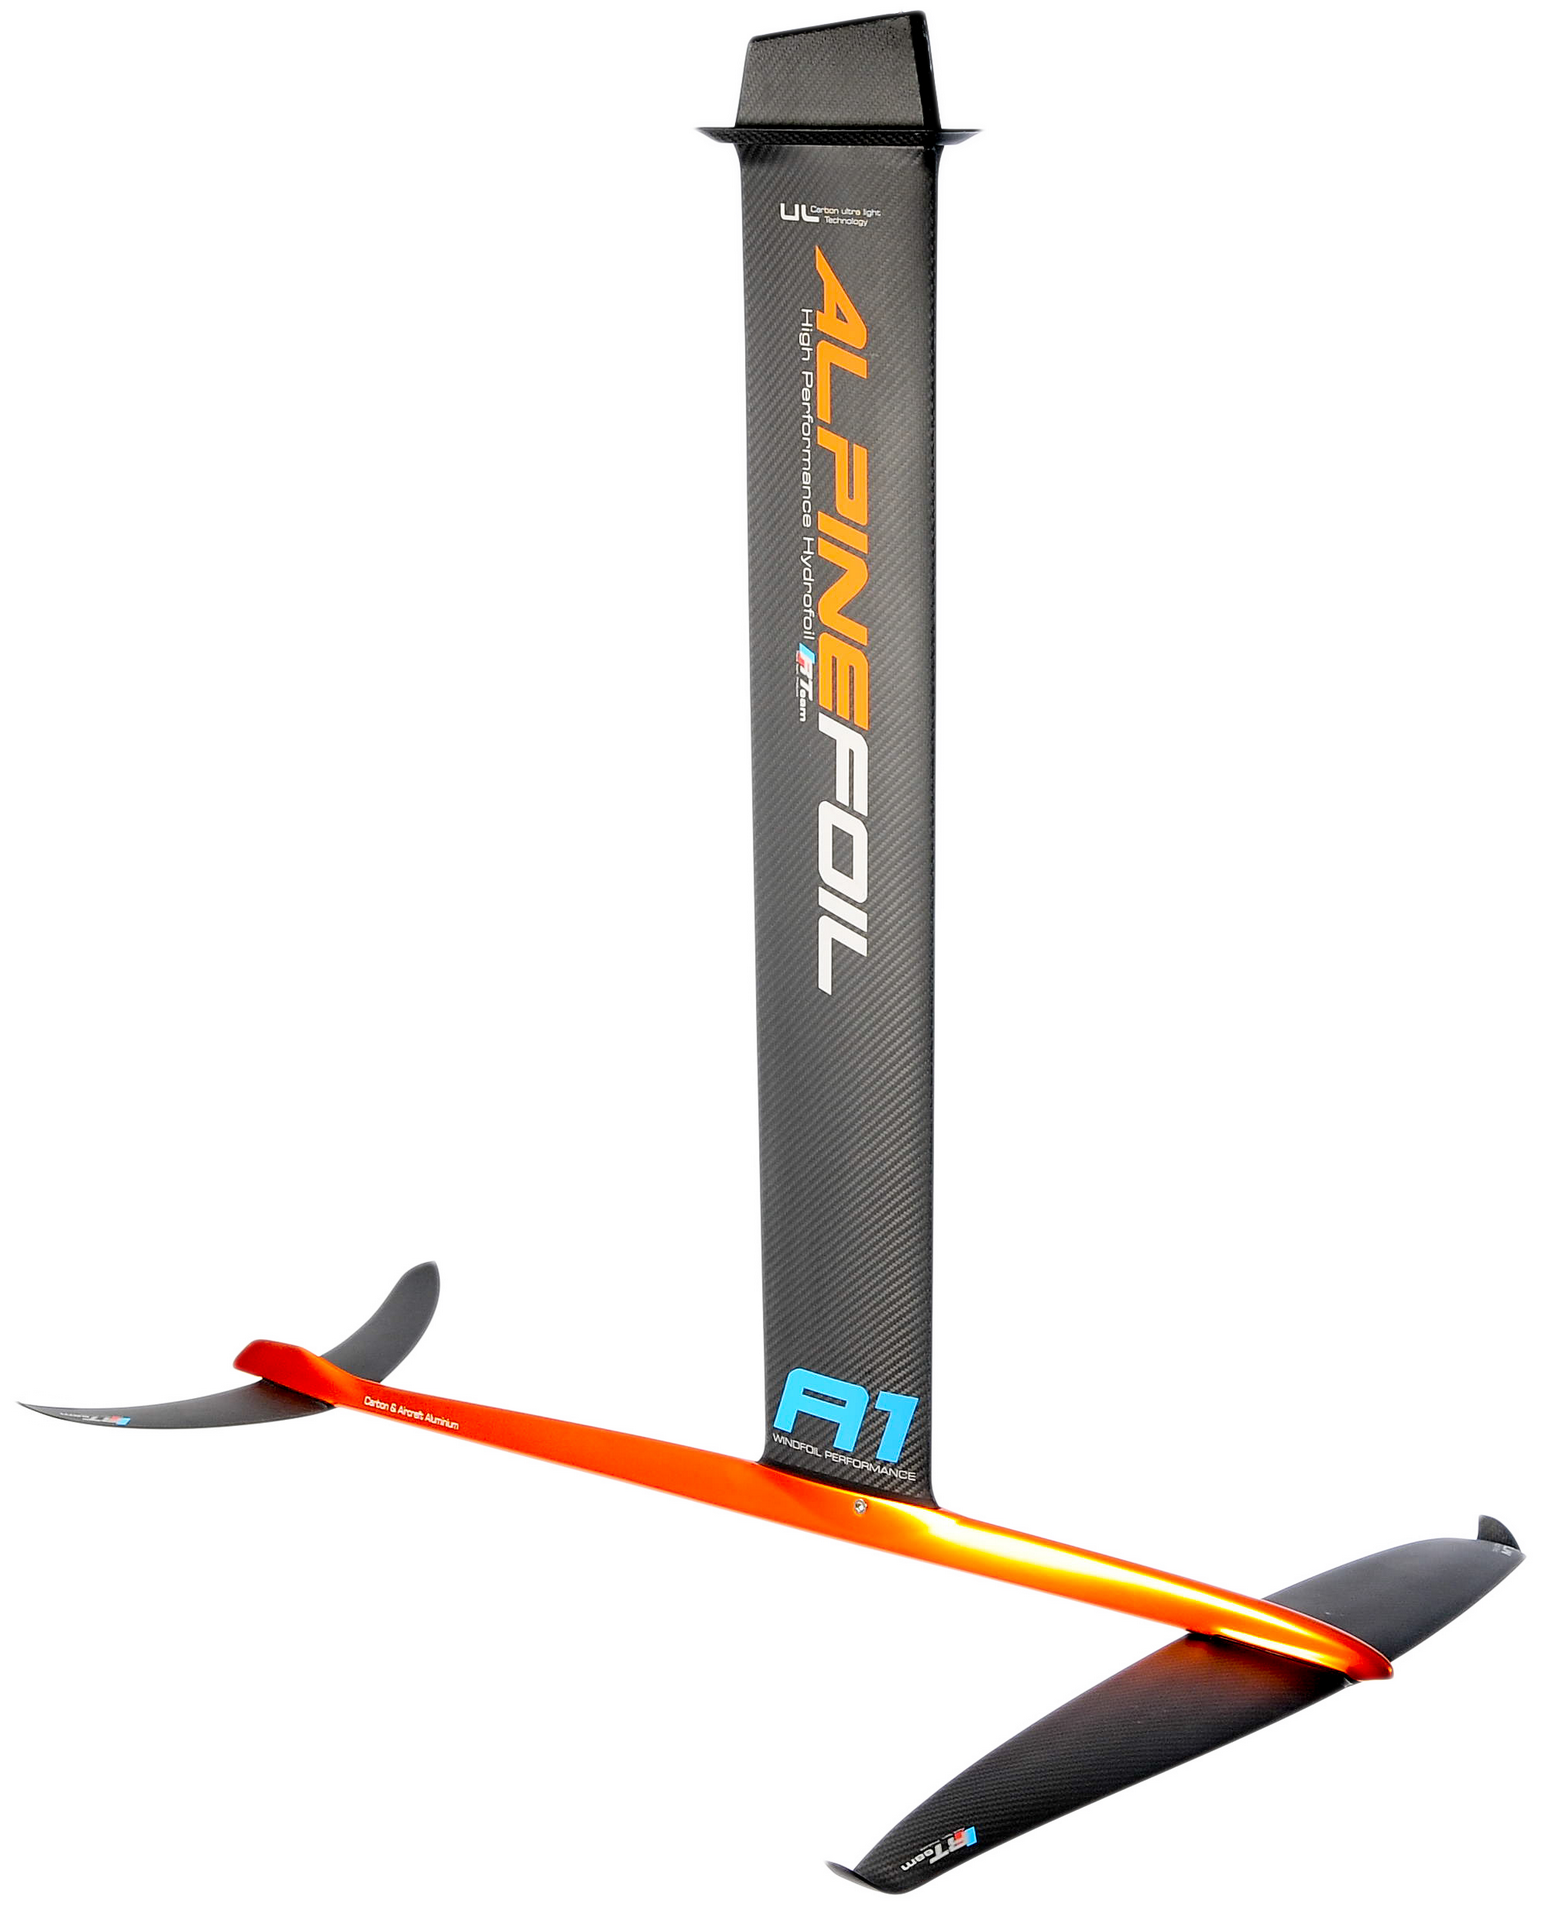 Windfoil alpinefoil A1 carbon dch 0435